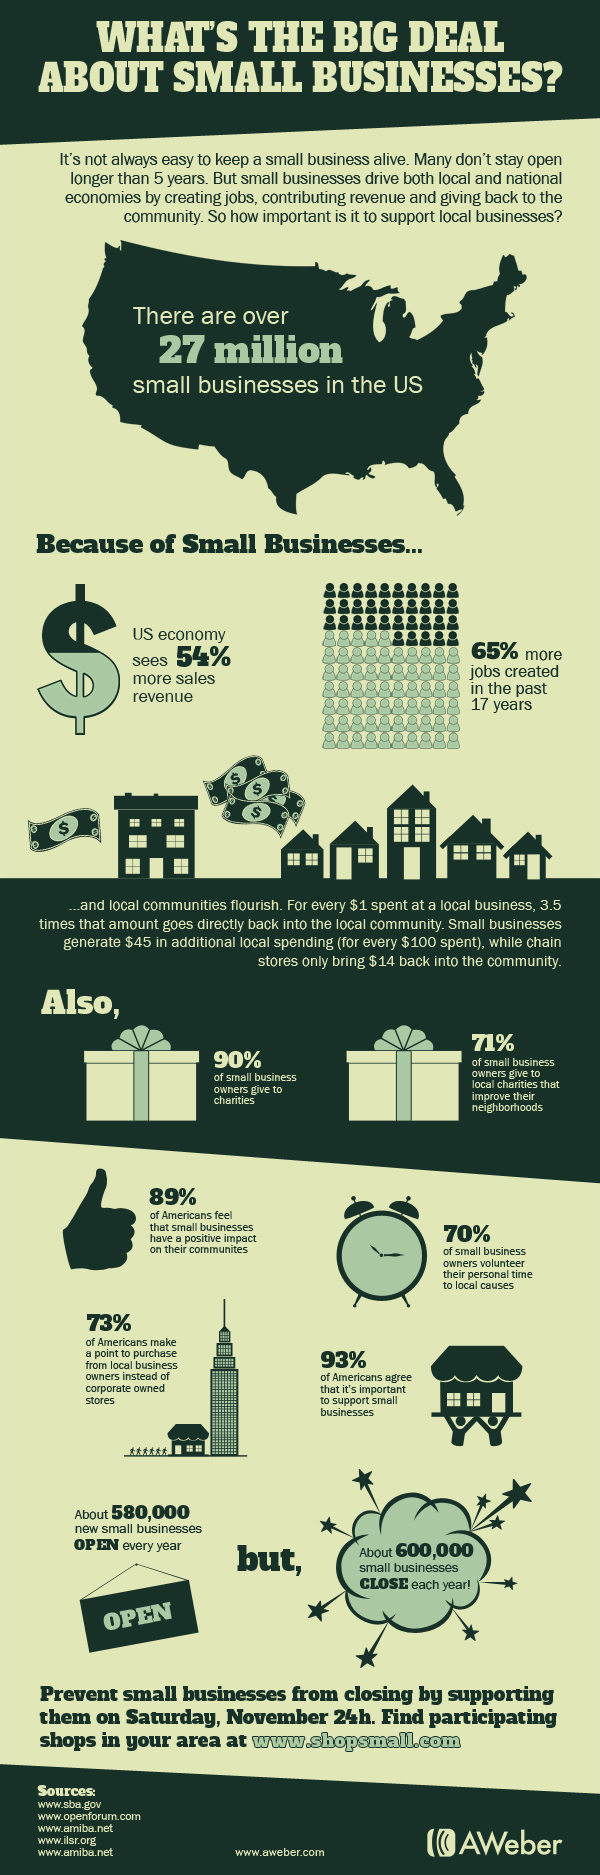 What's the Big Deal About Small Business? image Infographic small